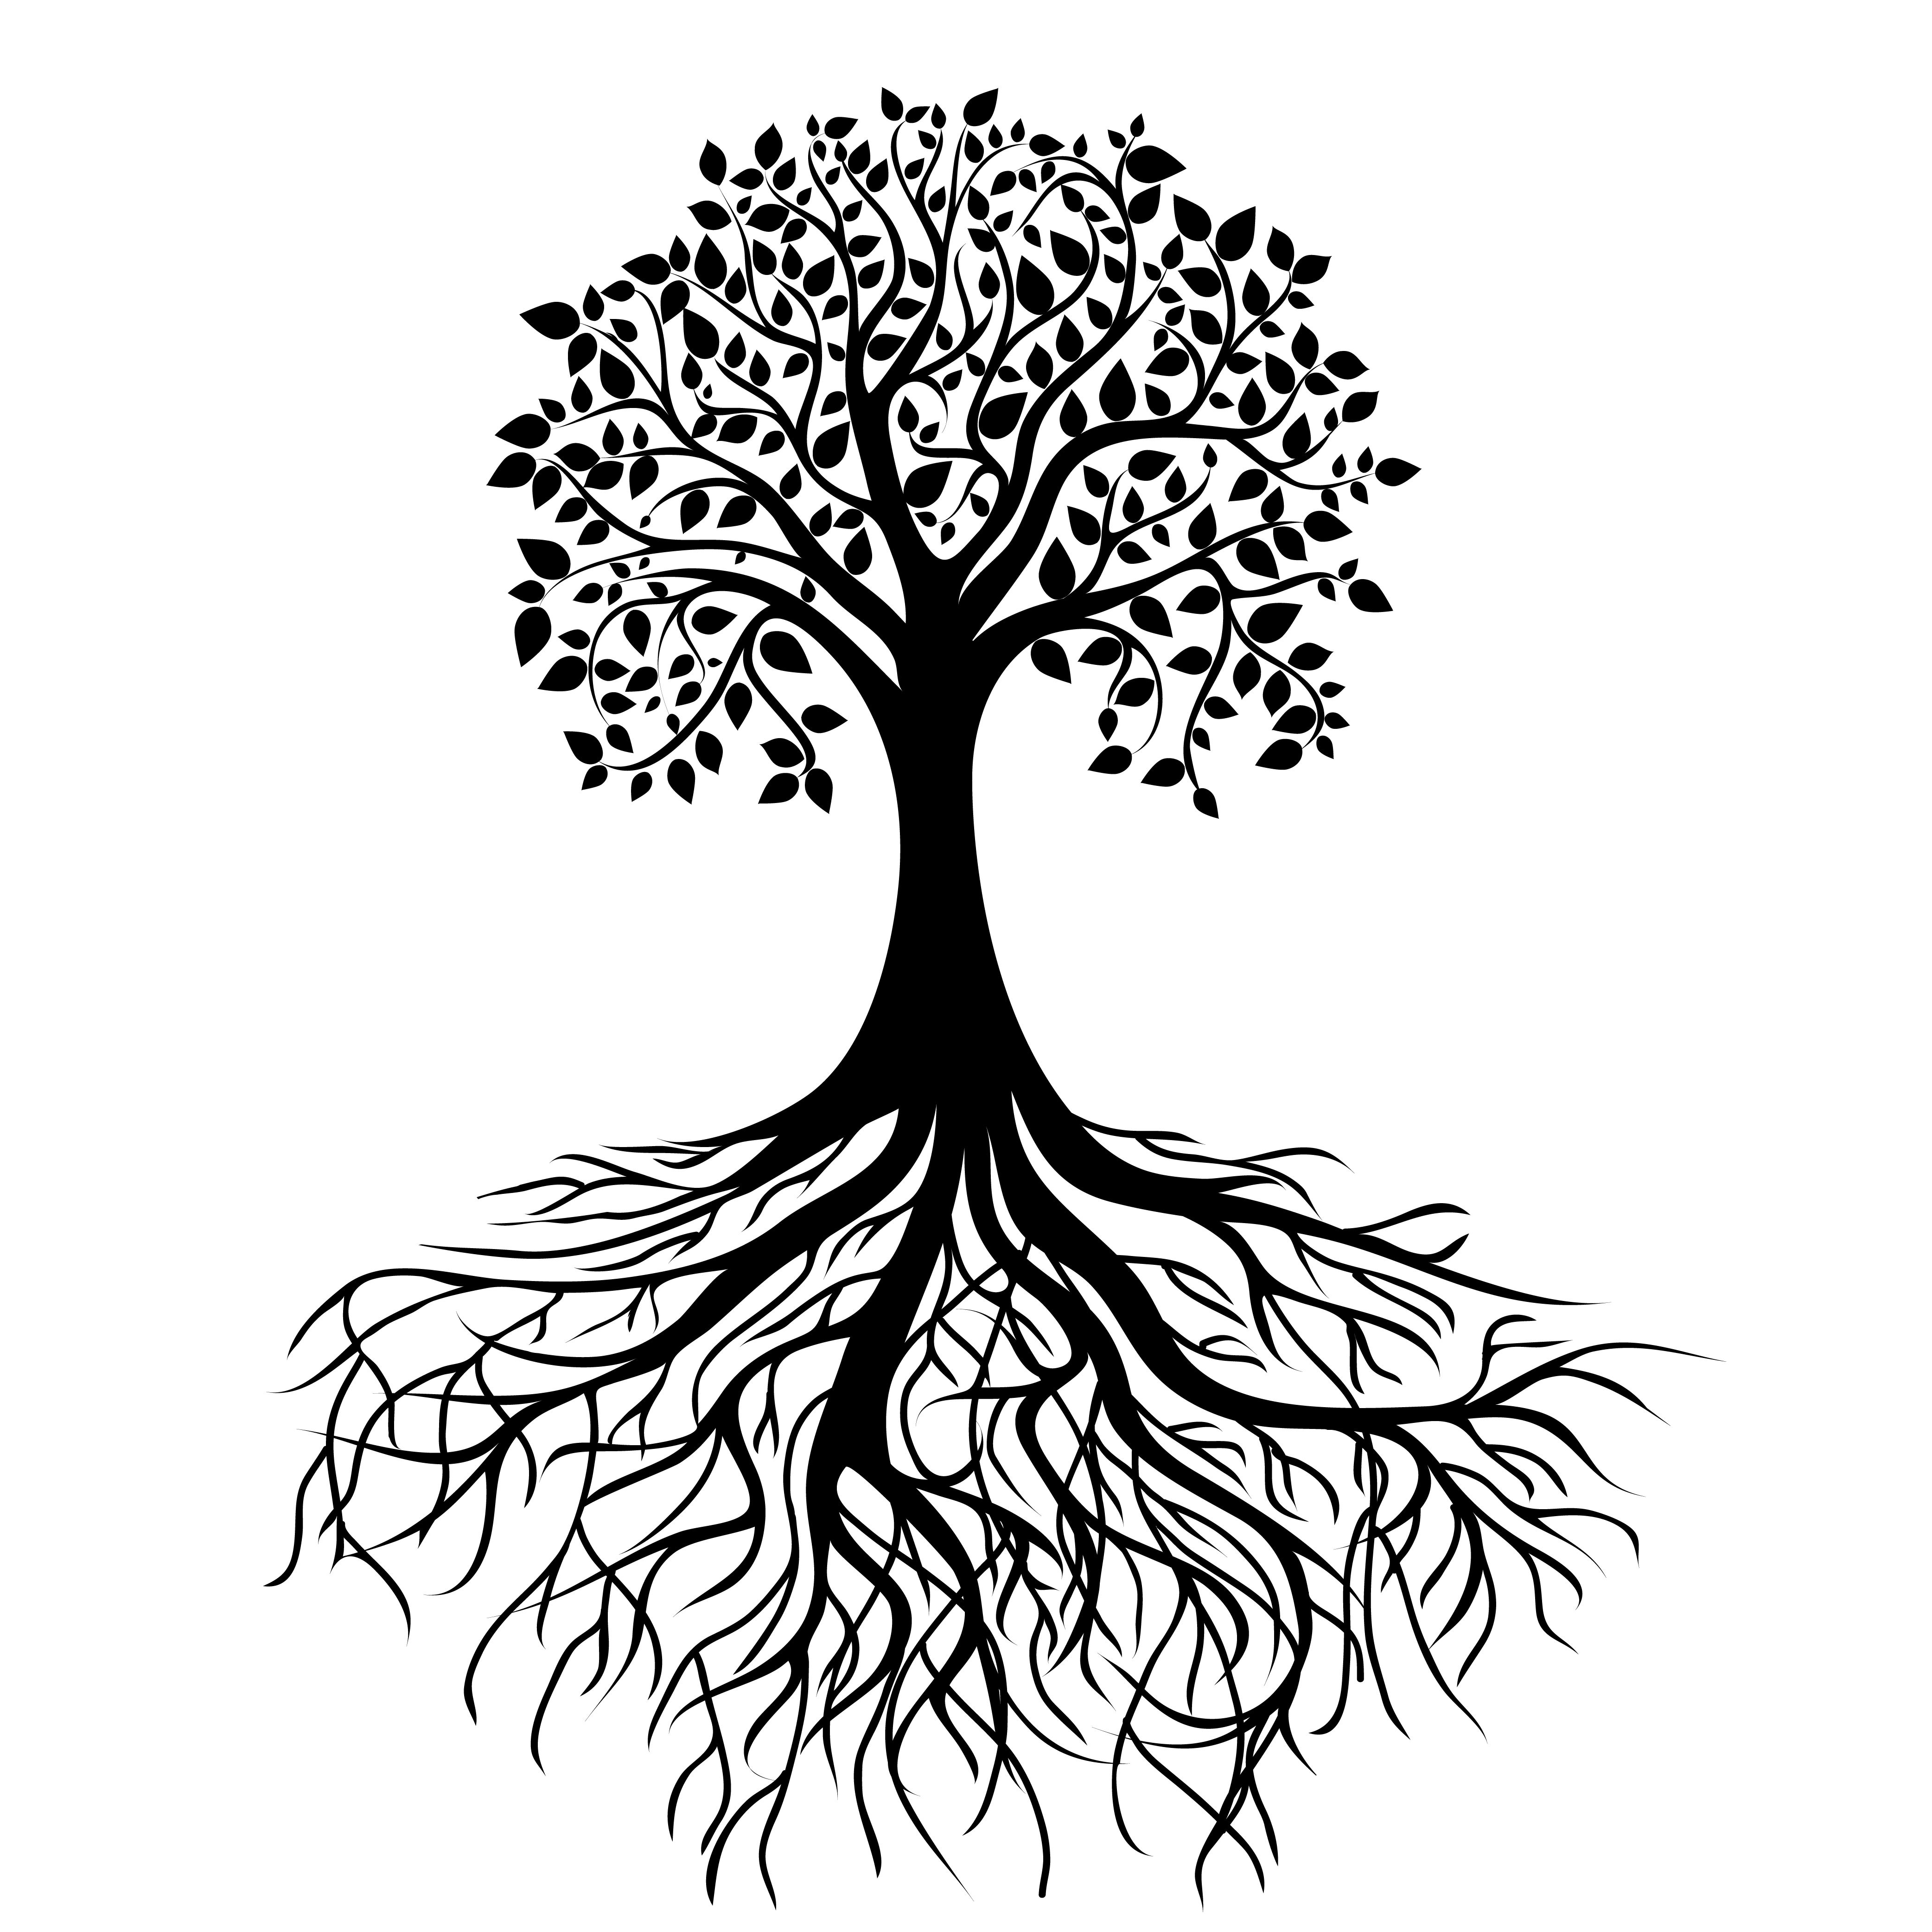 Oak Tree Clipart Black And White | Free download on ClipArtMag